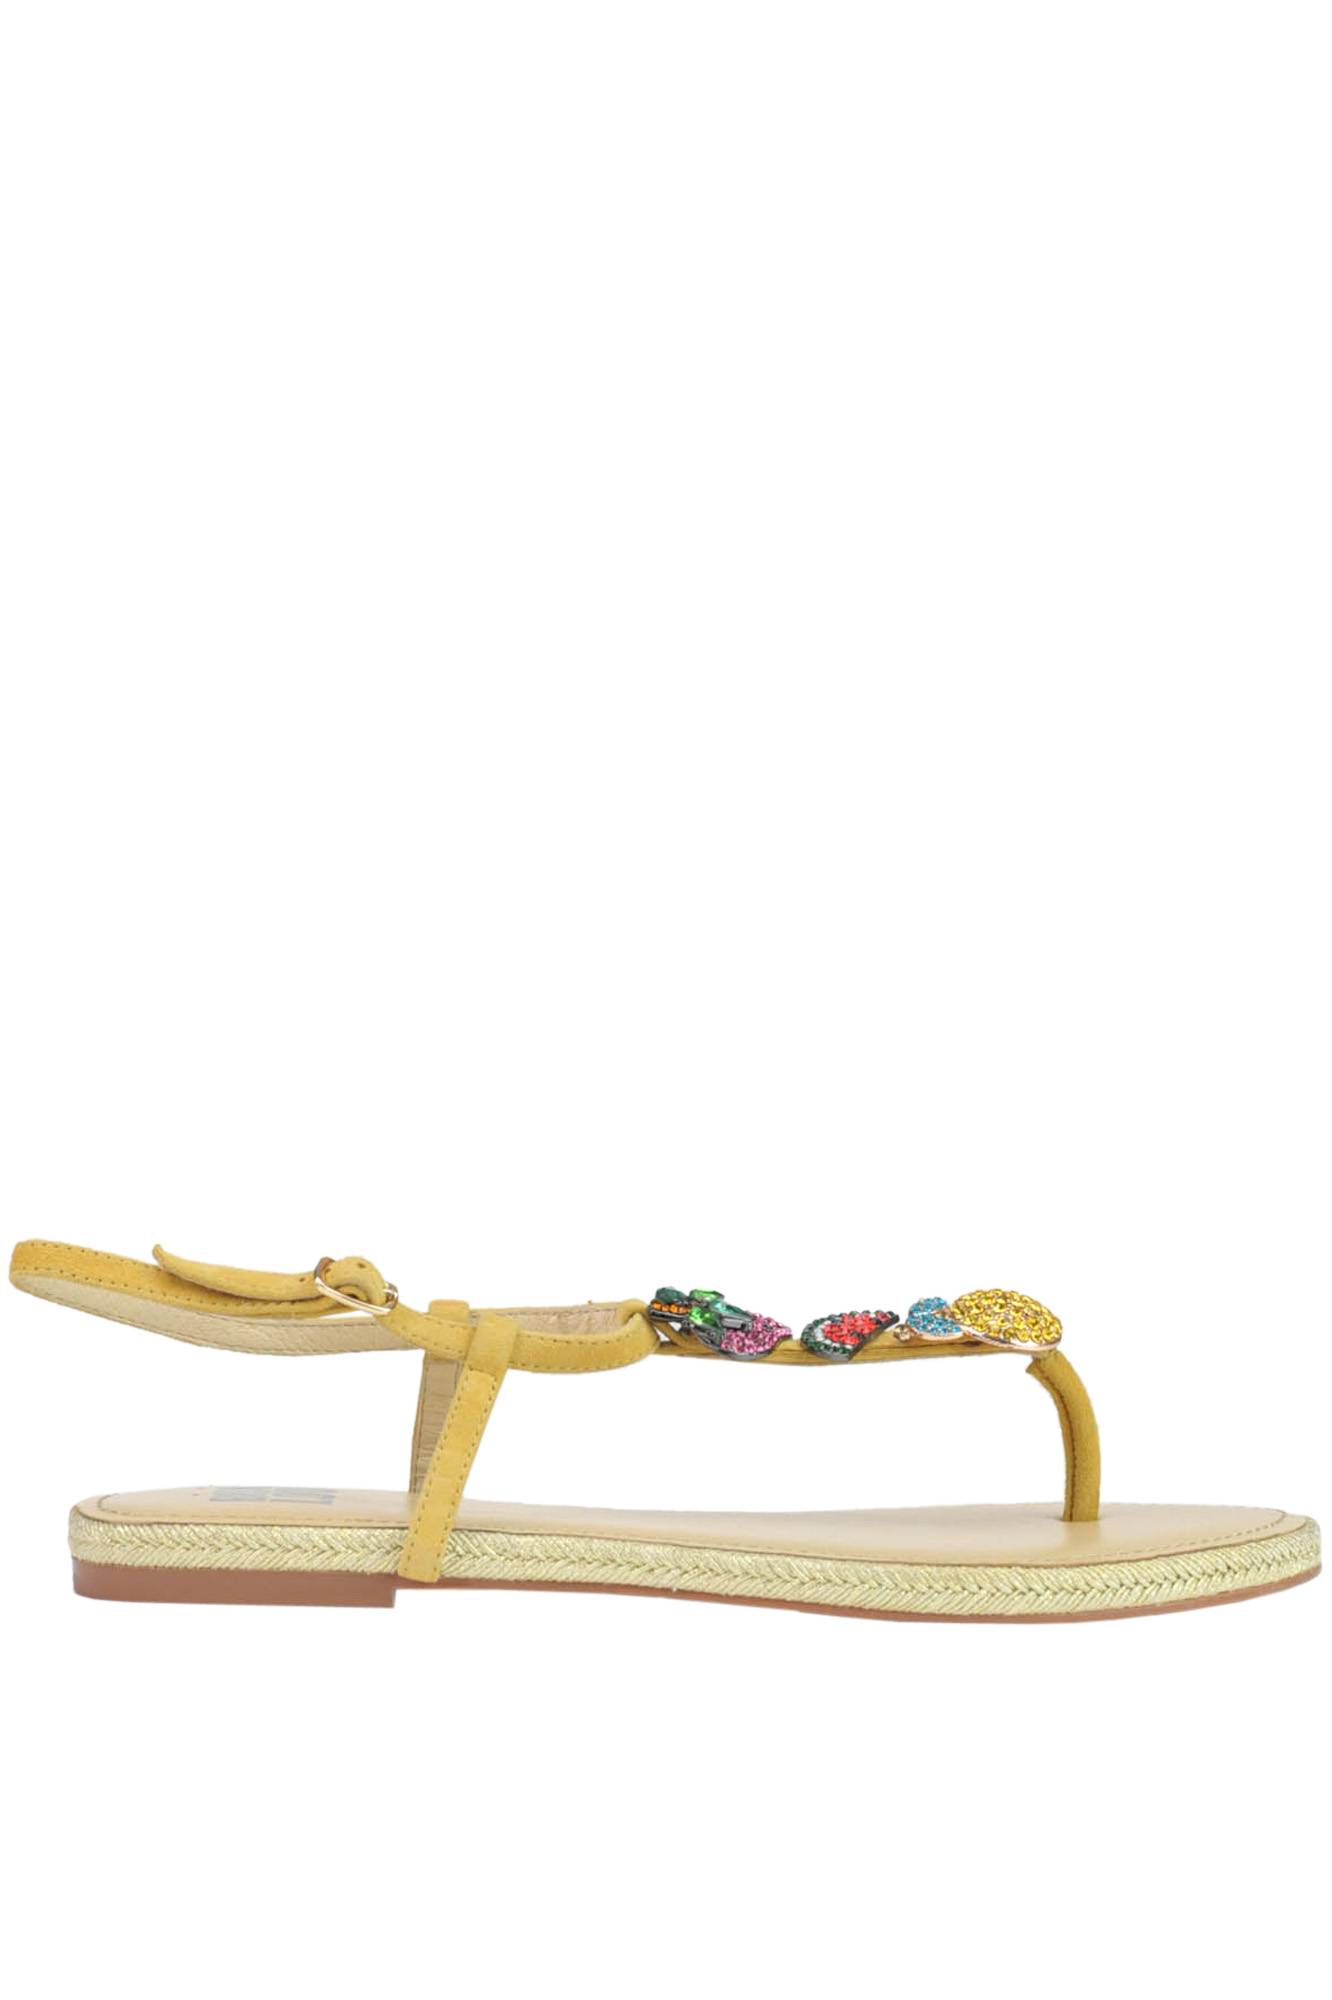 Image of Sandali infradito in suede